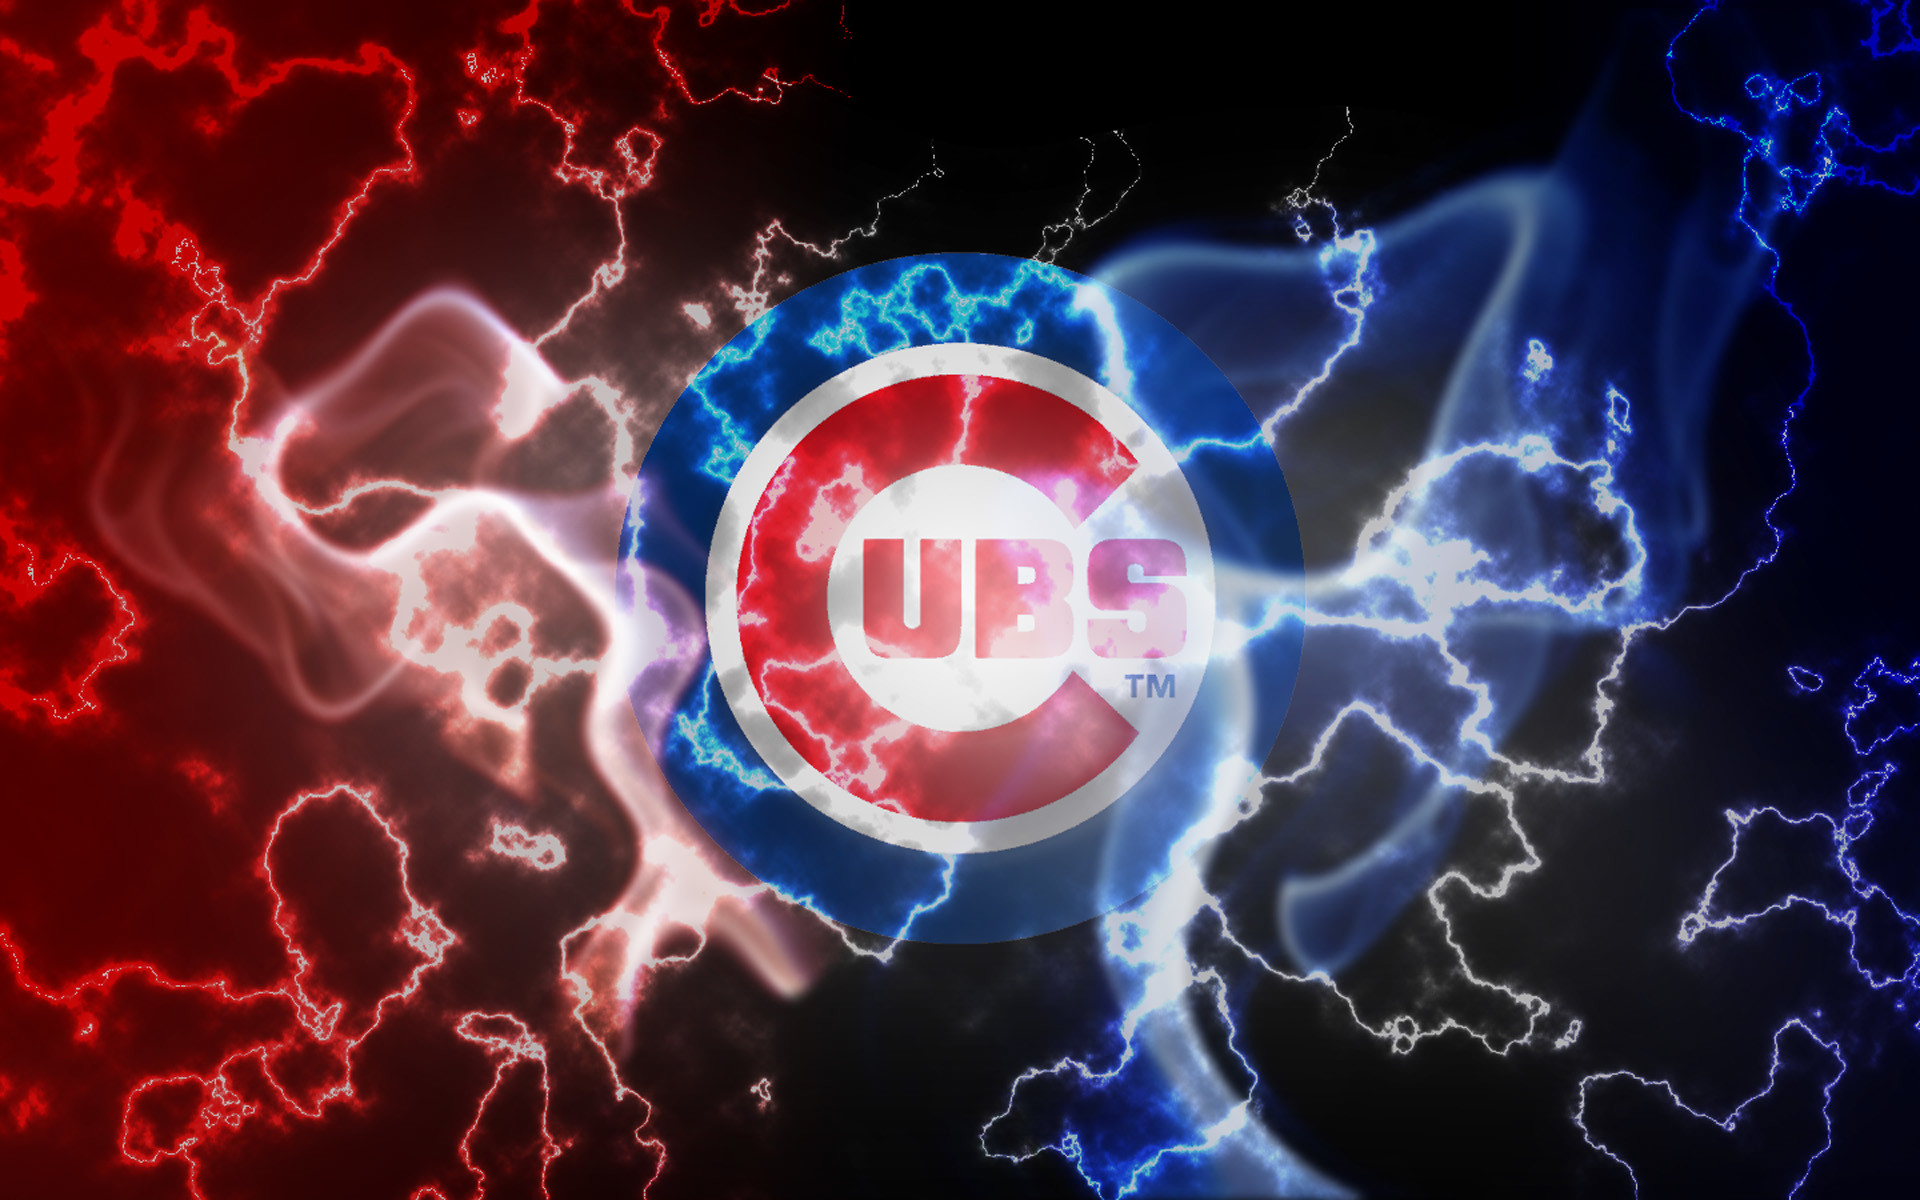 Chicago Cubs HD Wallpaper   HD Wallpapers, HD Backgrounds